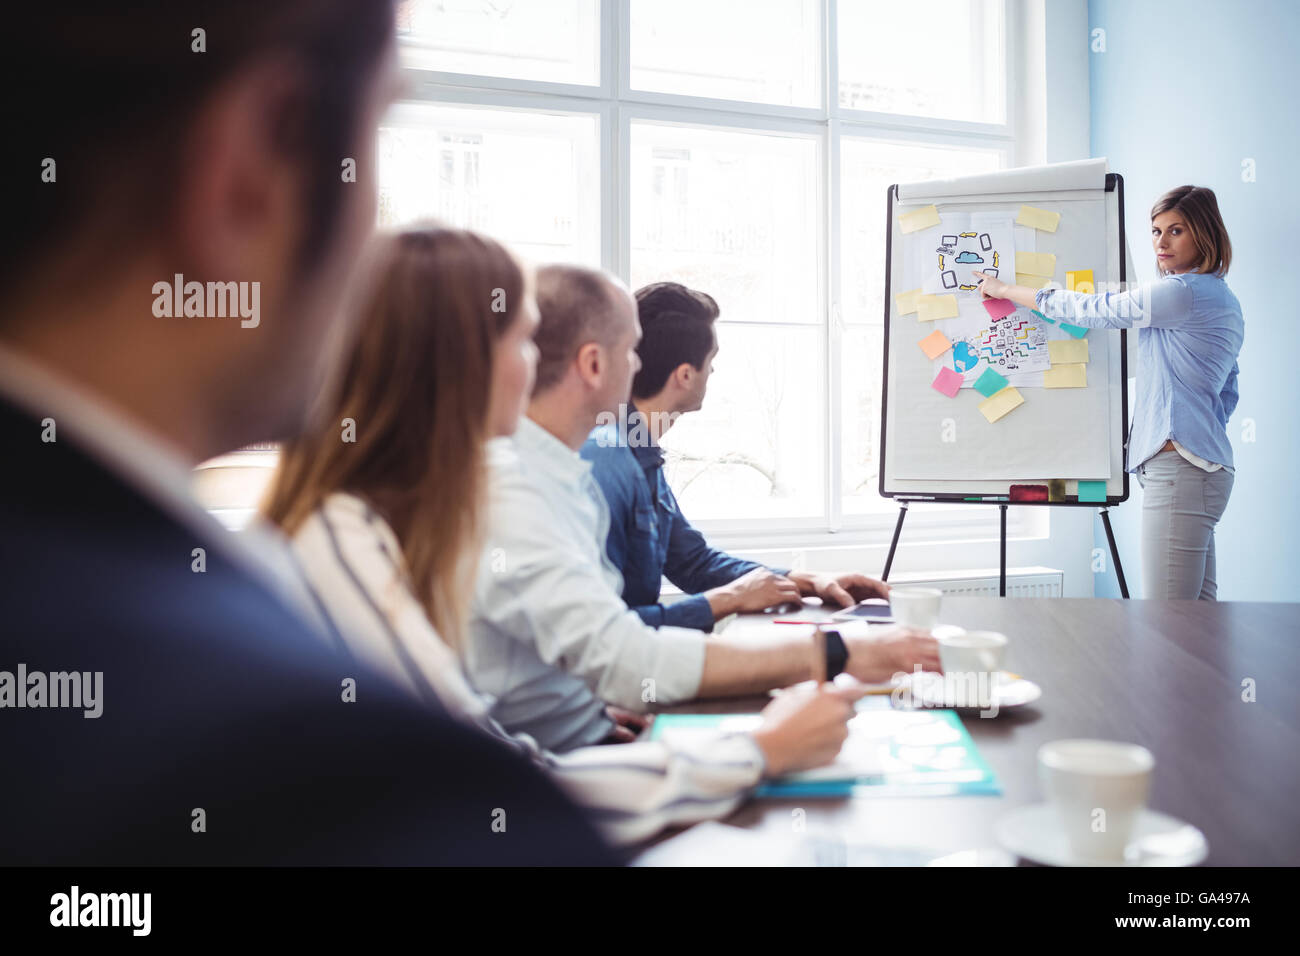 Businesswoman giving presentation in meeting room - Stock Image